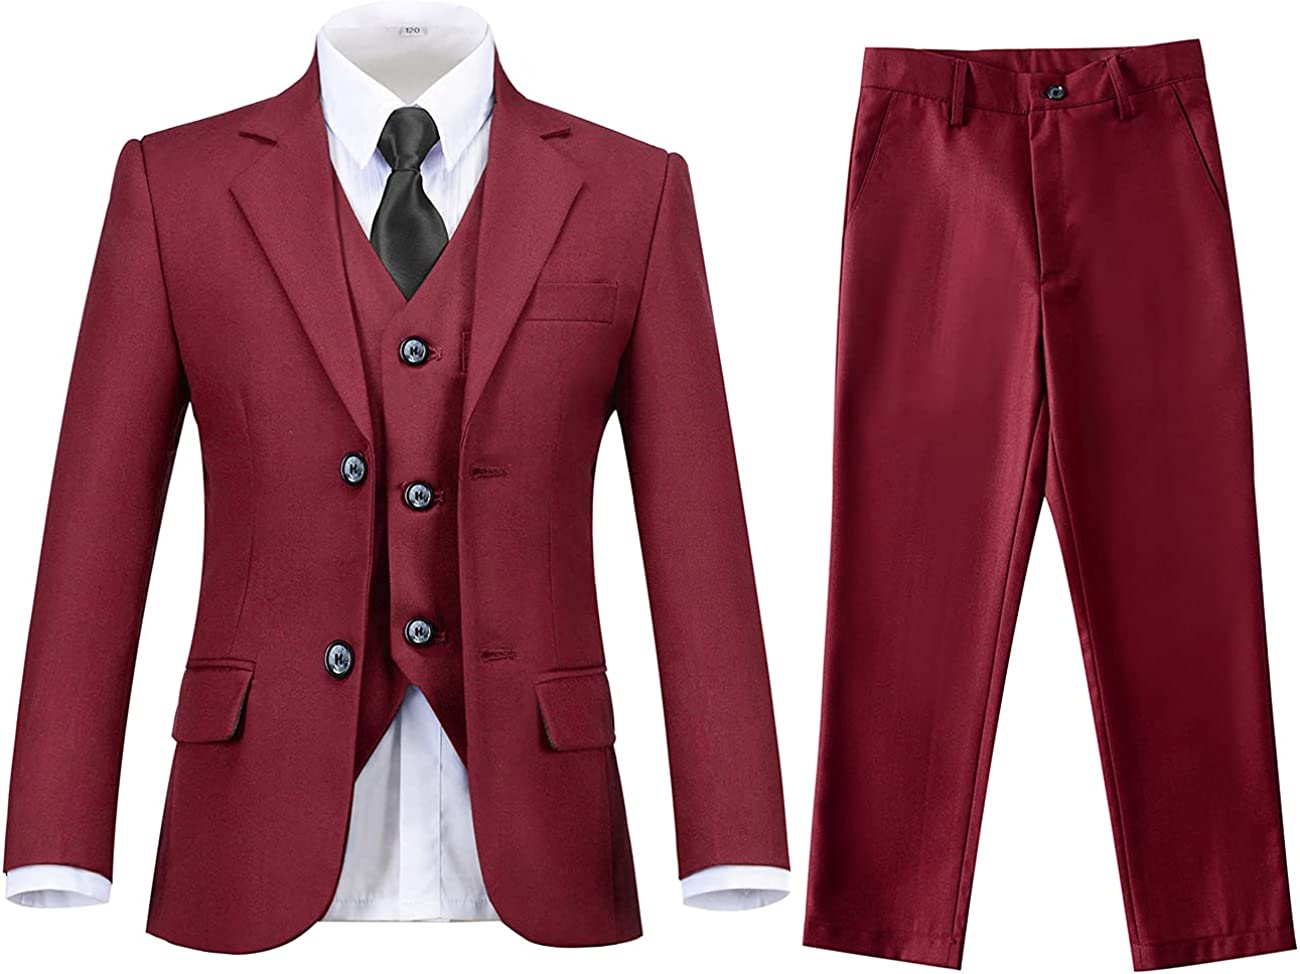 Lycody Tulsa Sale Mall Boys Suits Kids Formal 5 Wedding Dress Piece Set for Suit